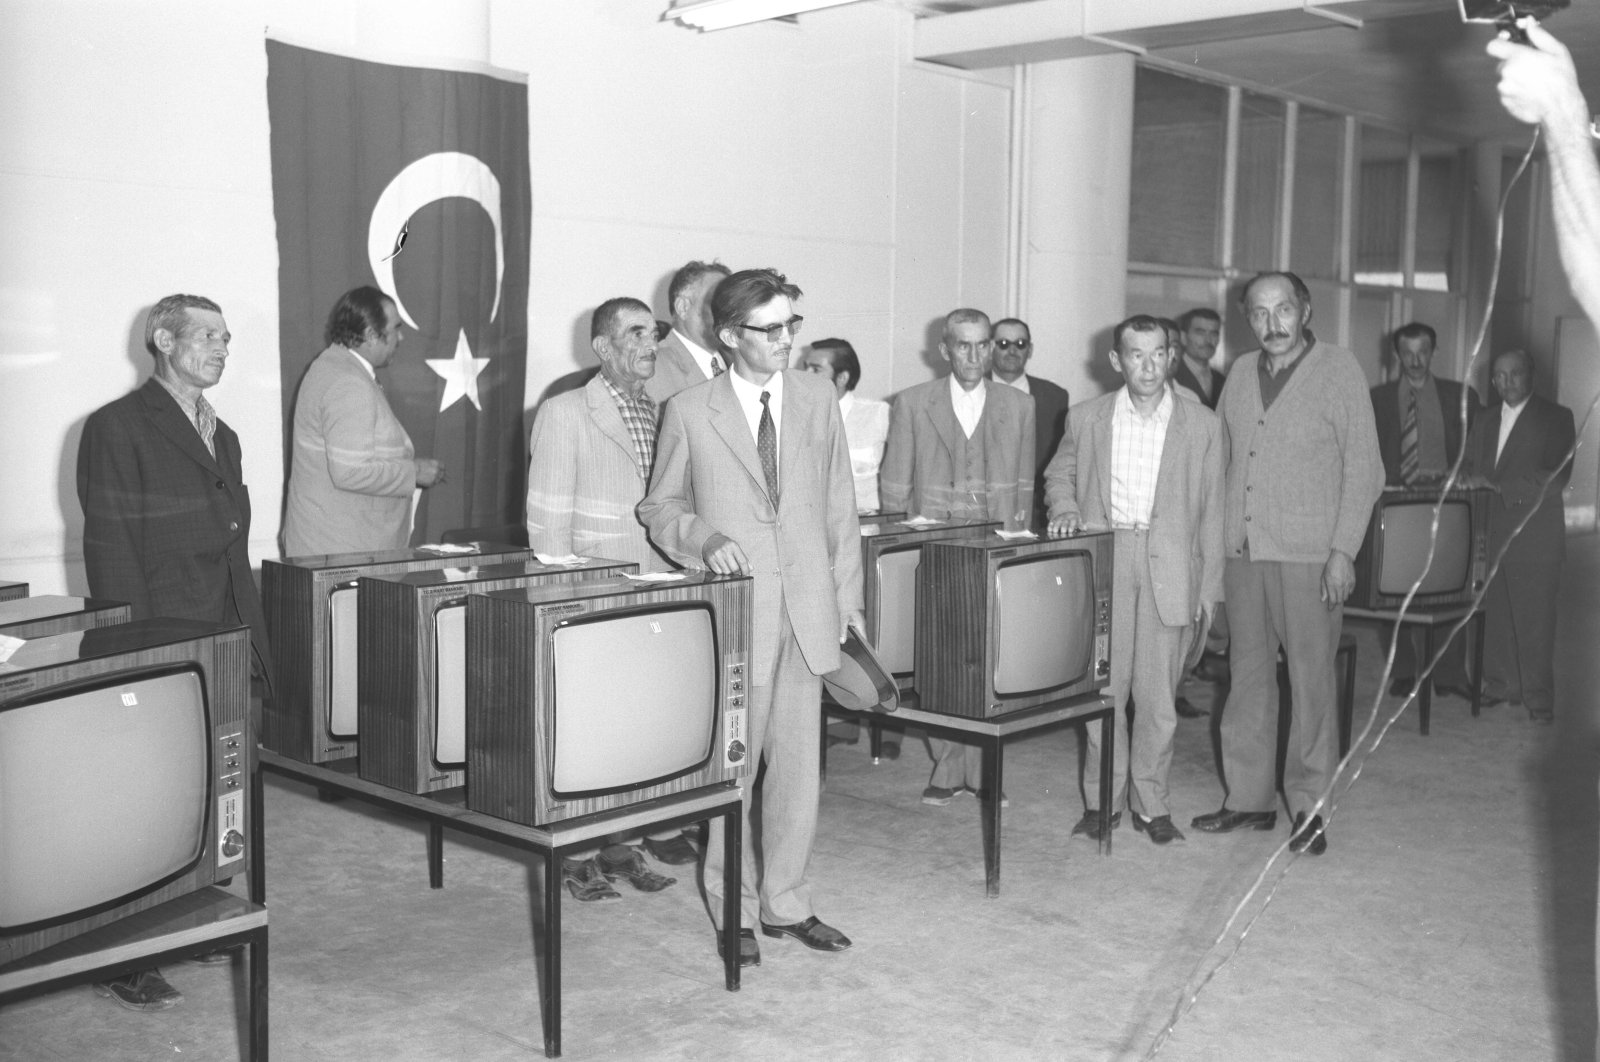 TV sets are gifted by TRT officials to villagers as part of the public broadcaster's campaign to distribute televisions to people living in Turkey's rural areas,Turkey, Aug. 22, 1972. (AA Photo)